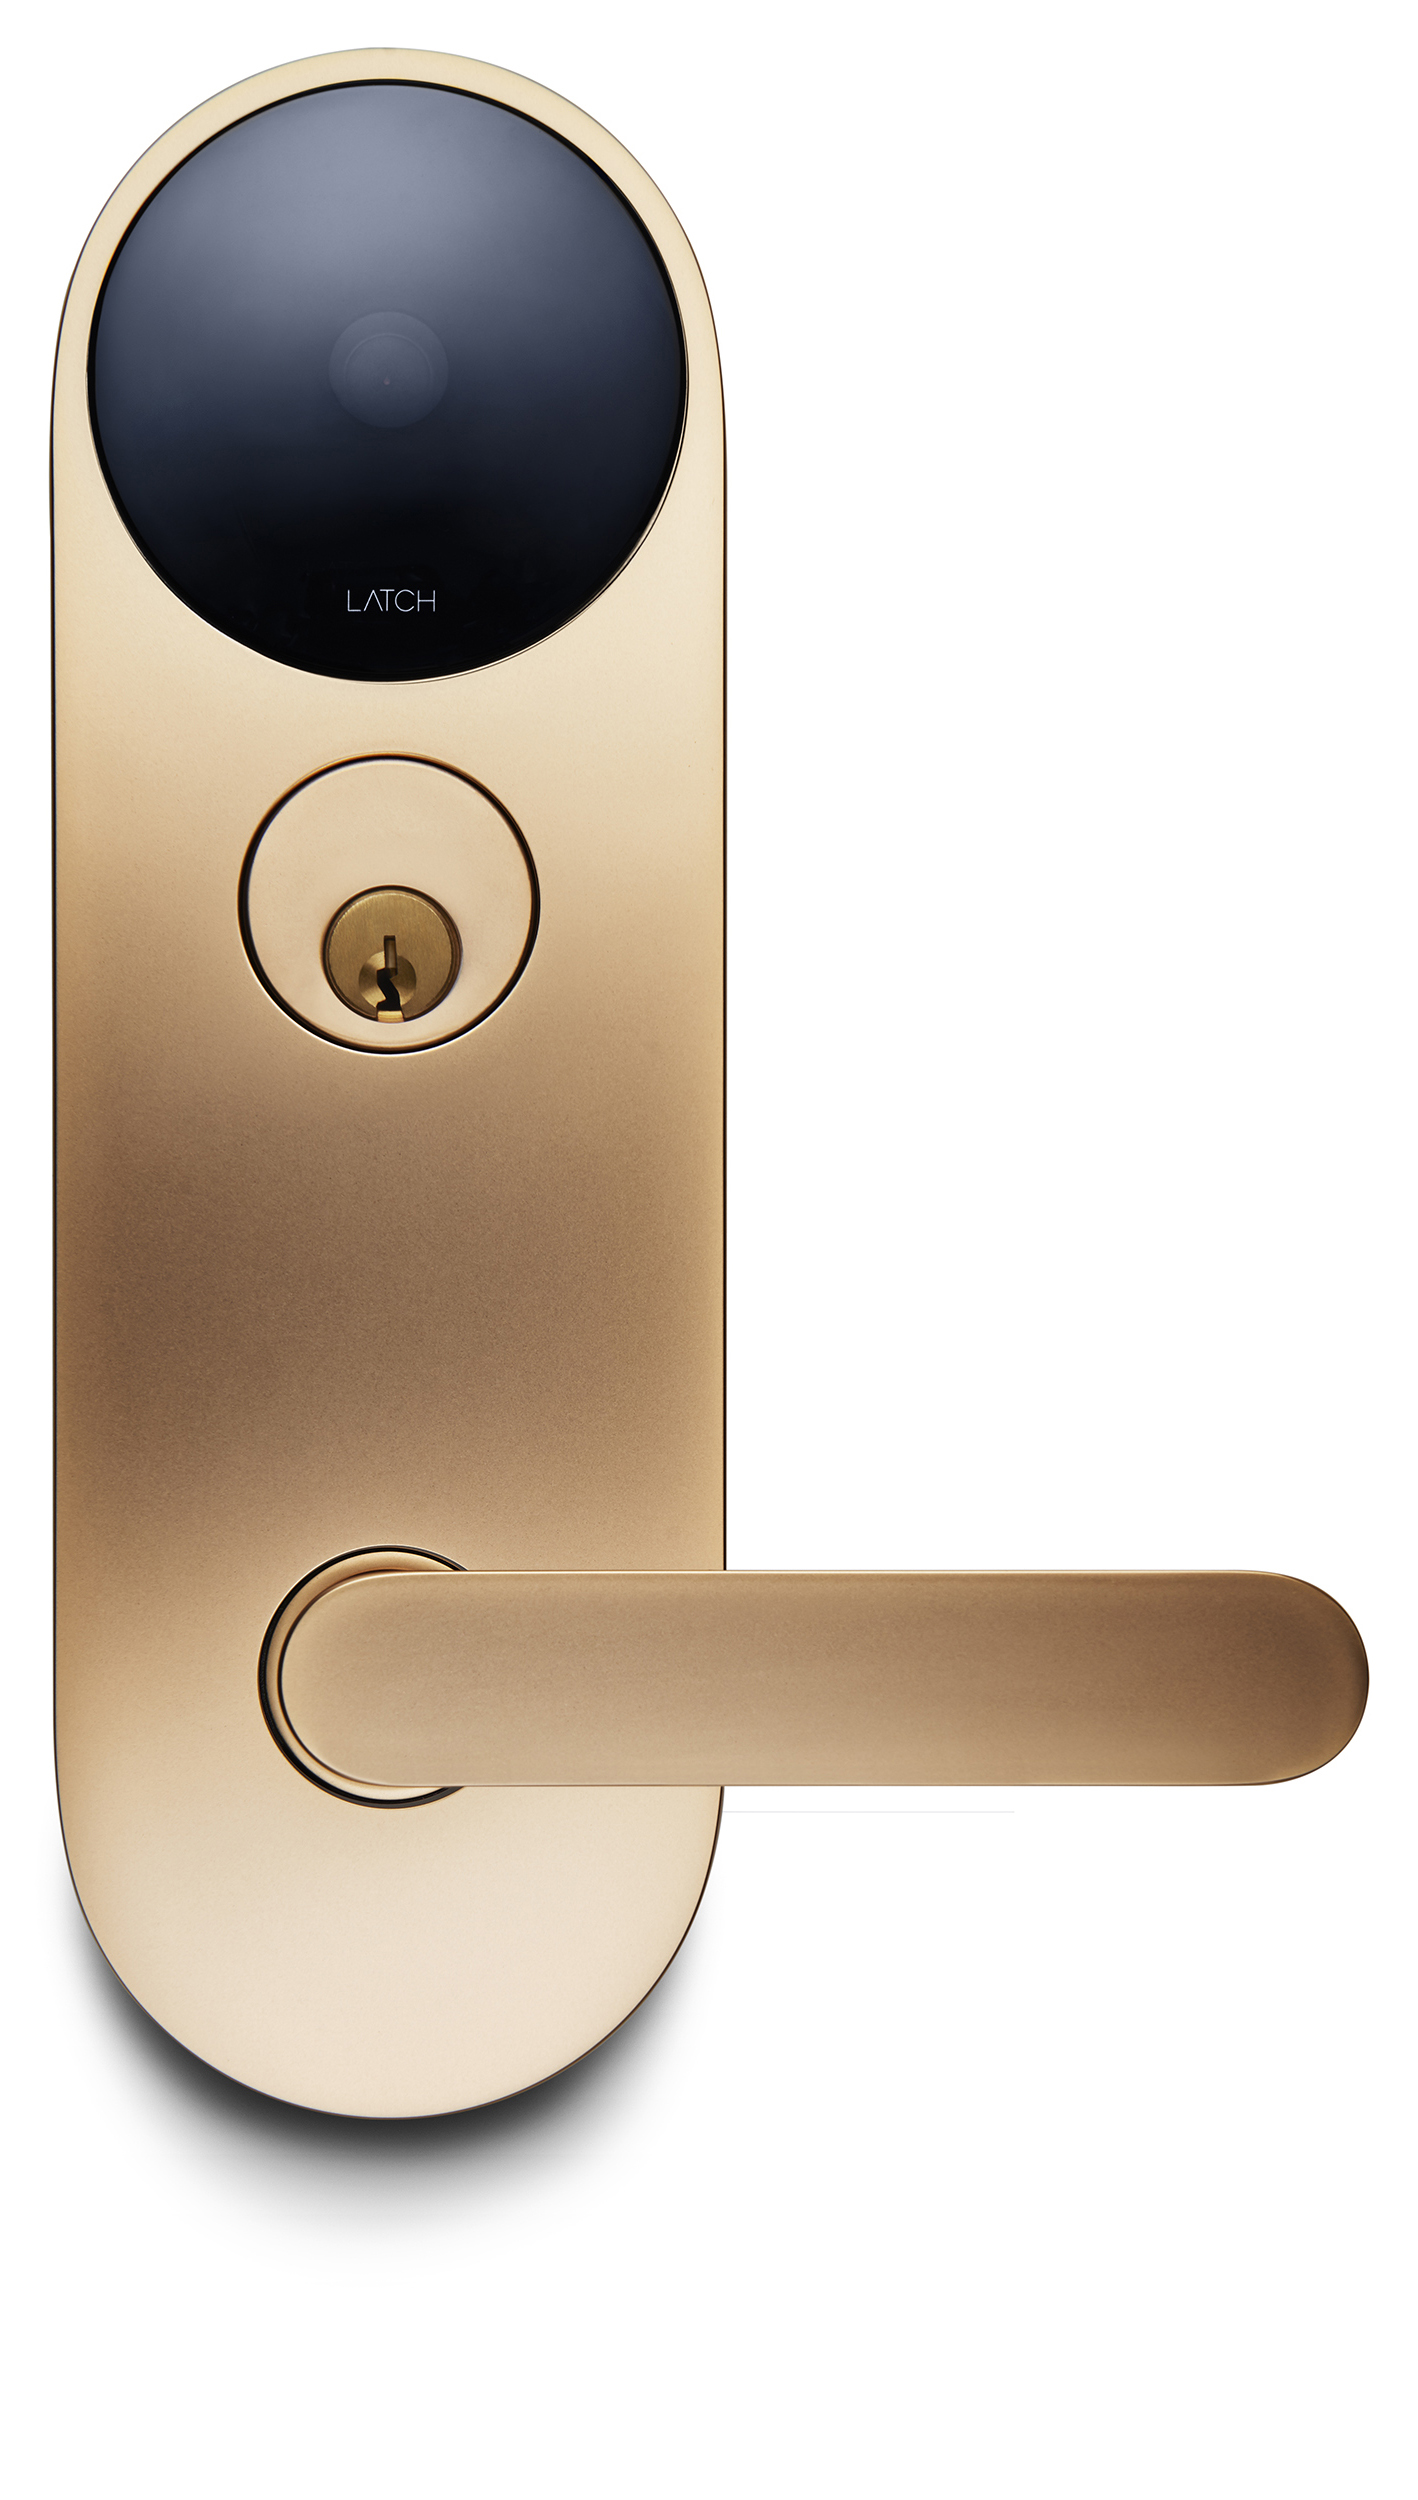 A gold Latch M mortise lock